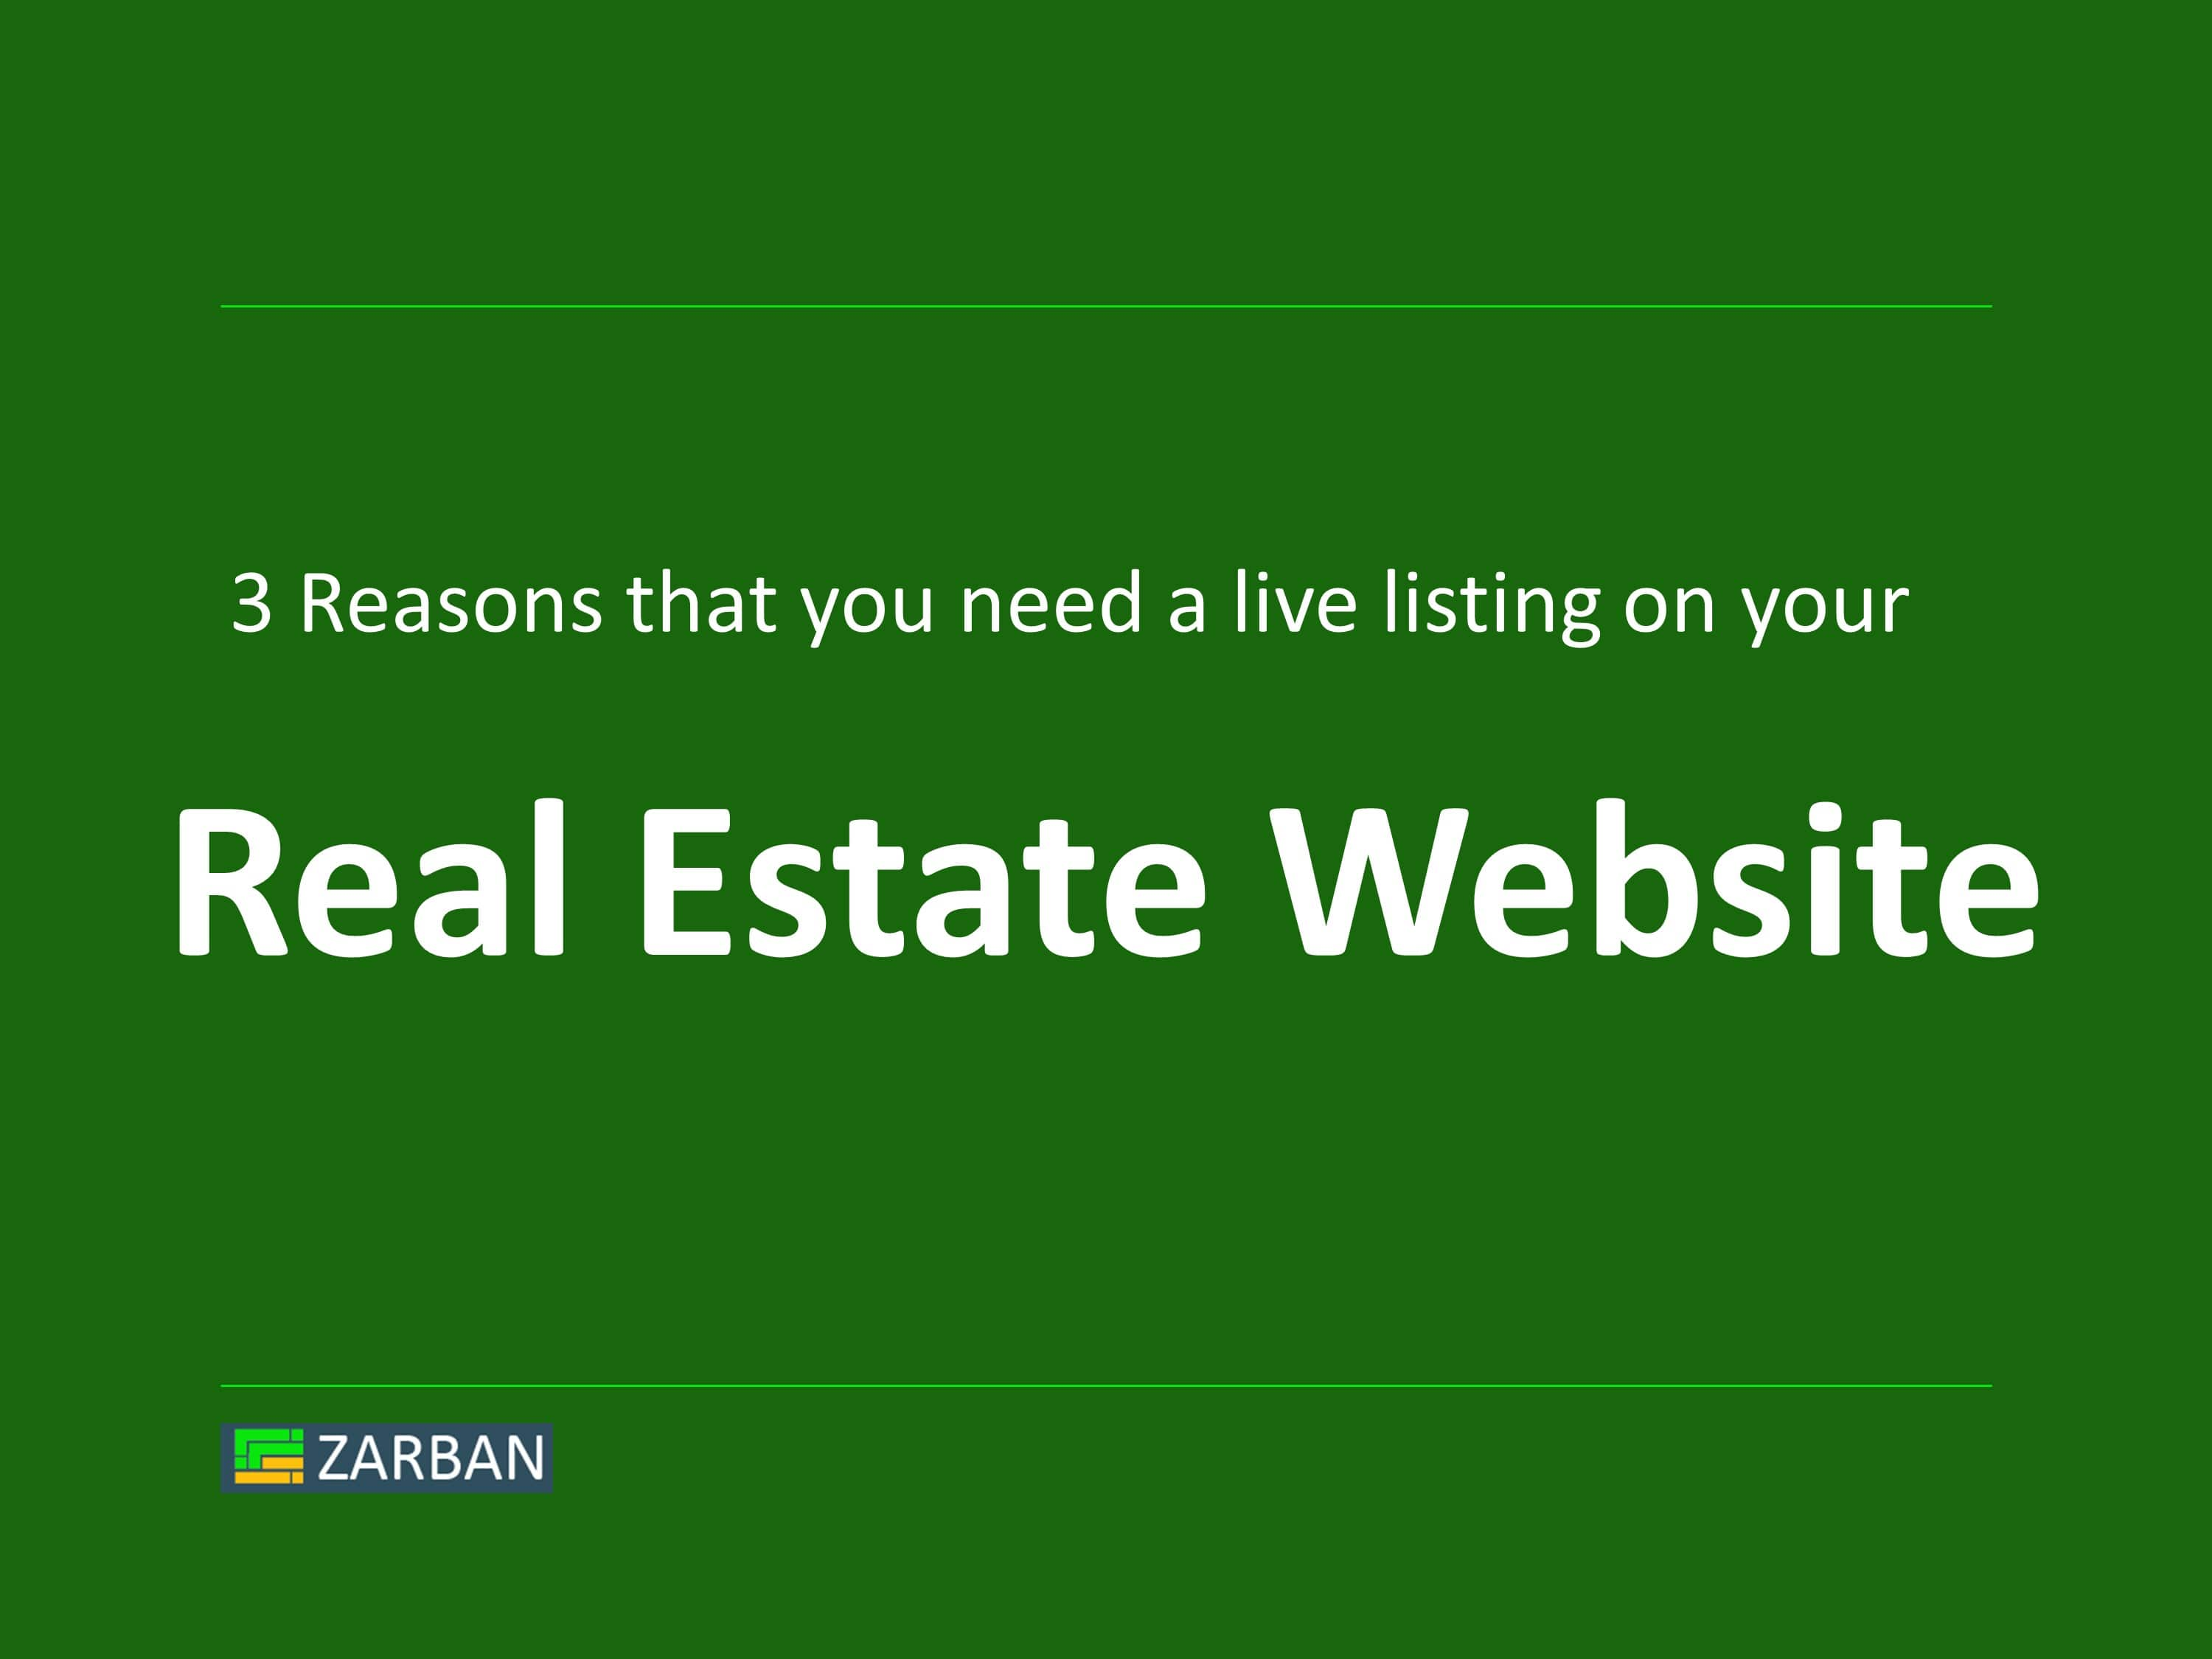 Real Estate Website Design, Why Do You Need Live Listings?